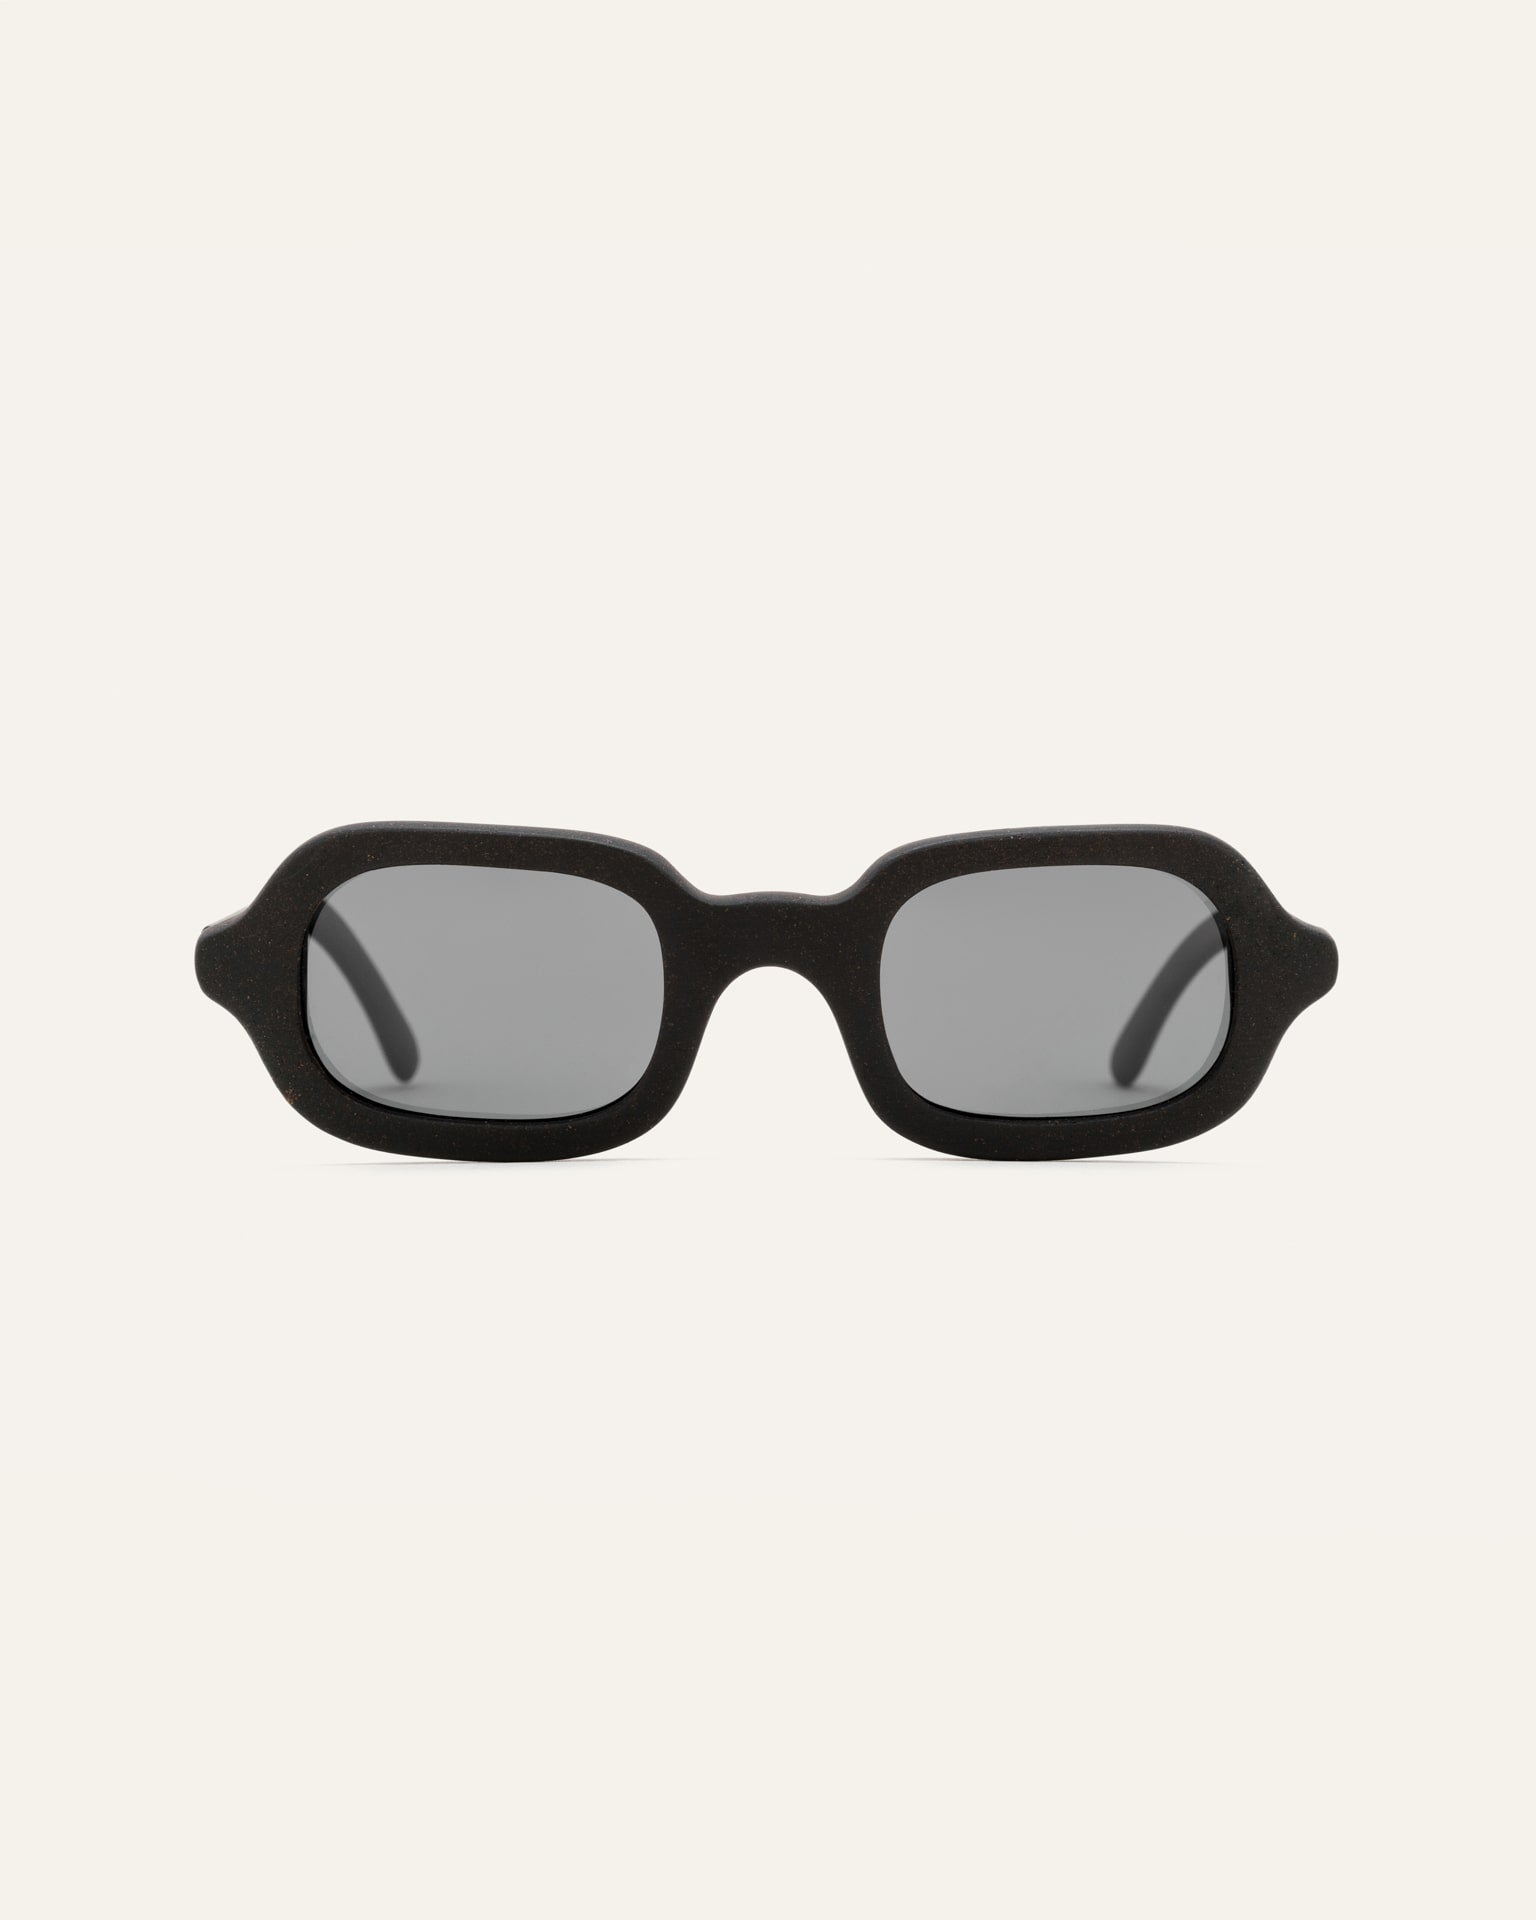 sustainable sunglasses rectangular frame